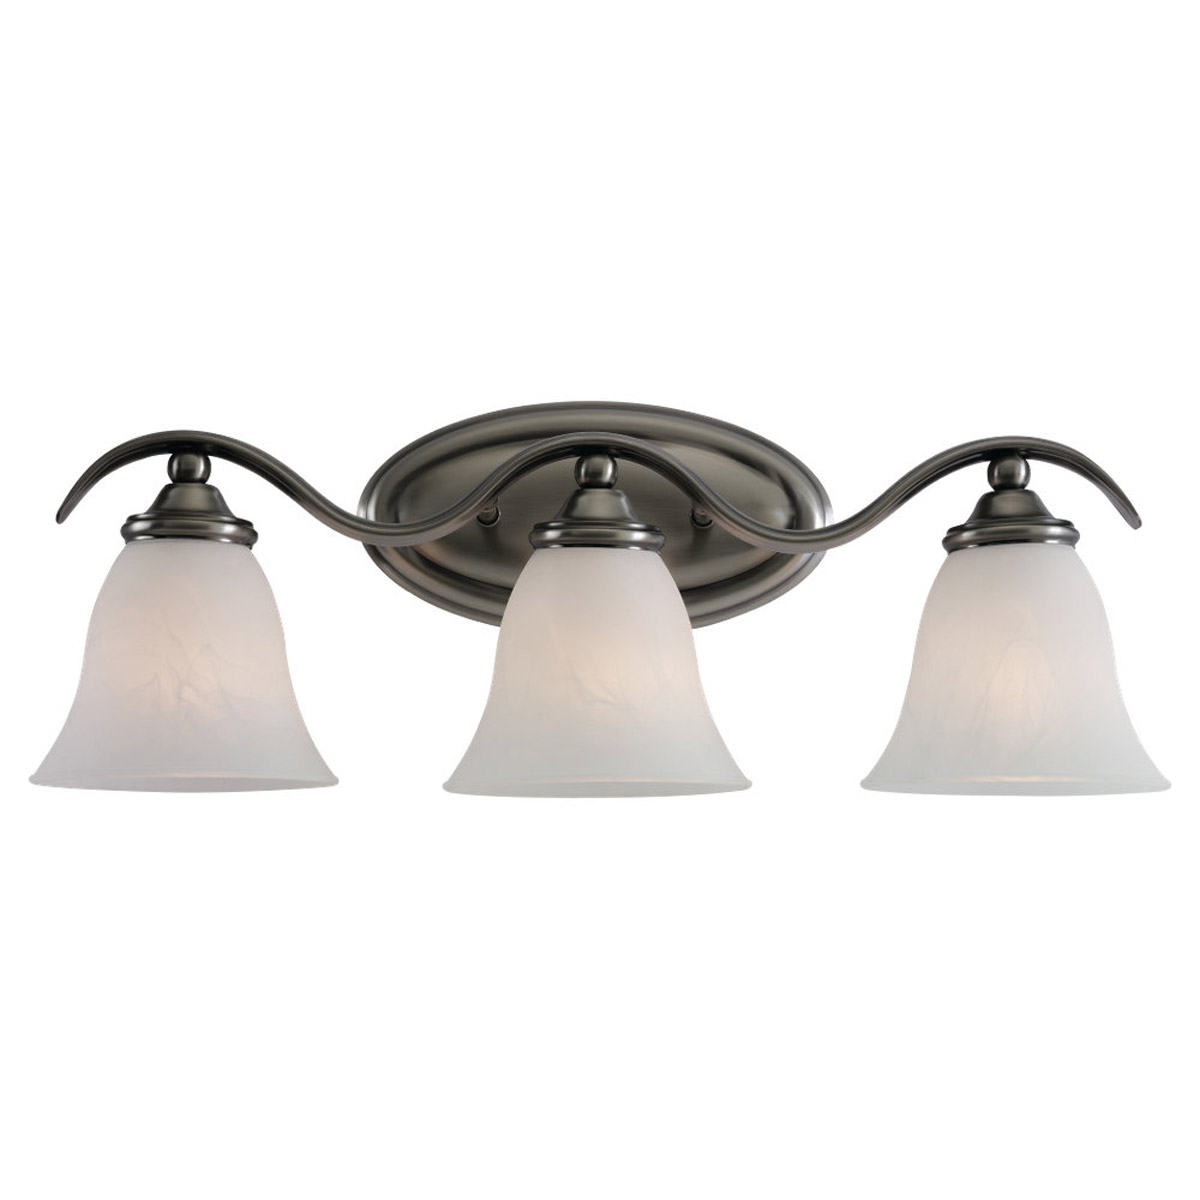 Sea Gull 44361-965 Rialto 3 Light 22 inch Antique Brushed Nickel Bath Vanity Wall Light in Etched White Alabaster Glass photo